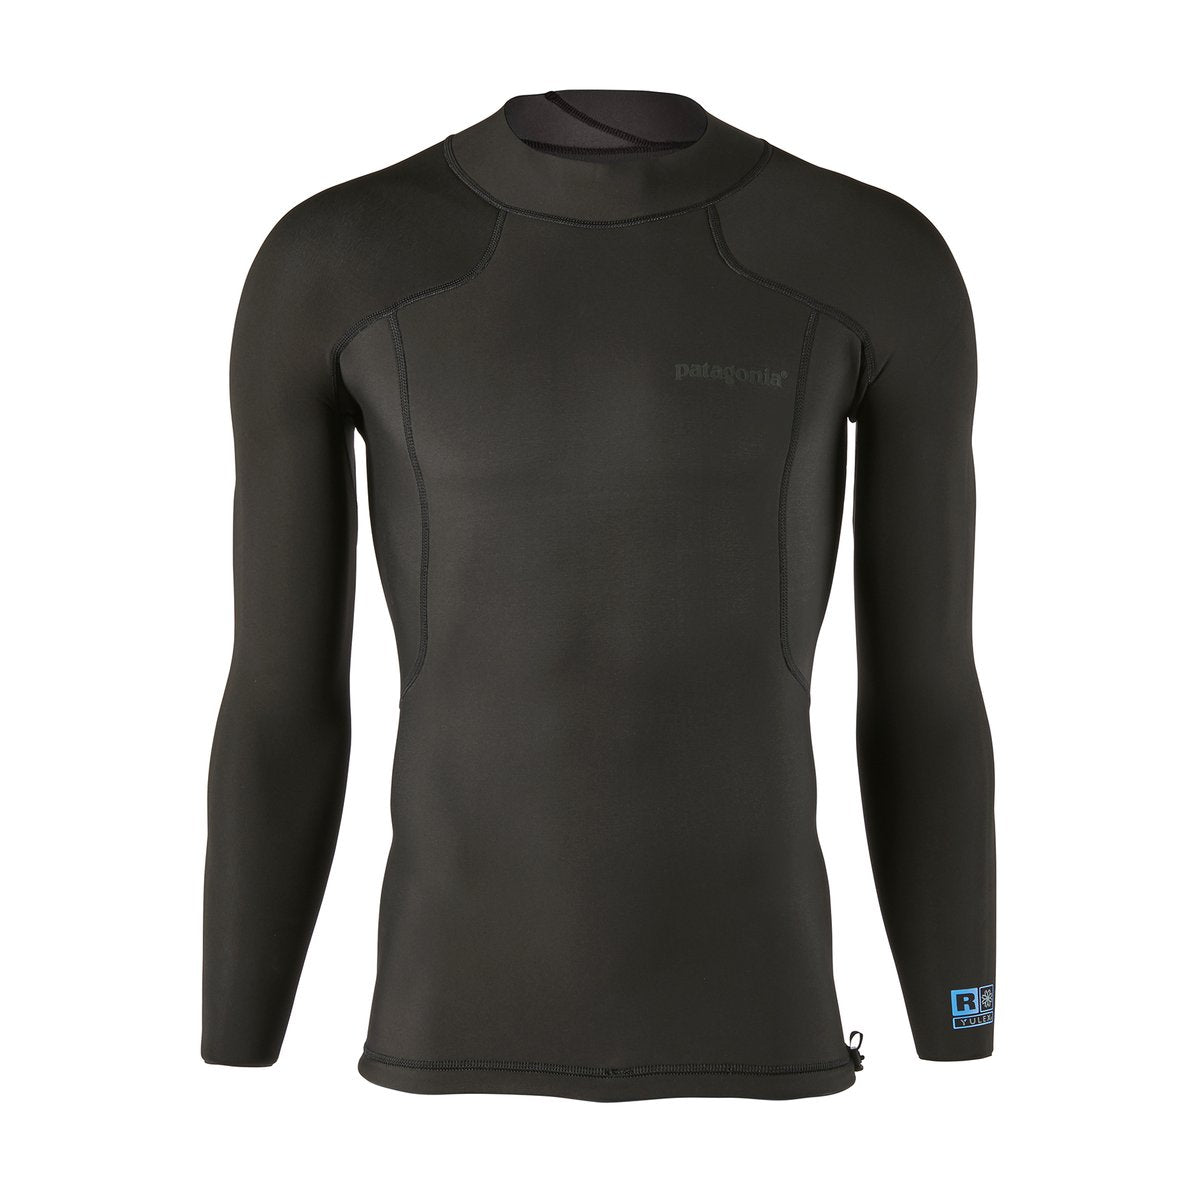 Men's R1 Lite Yulex Long Sleeve Top - Board Store PatagoniaWetsuits